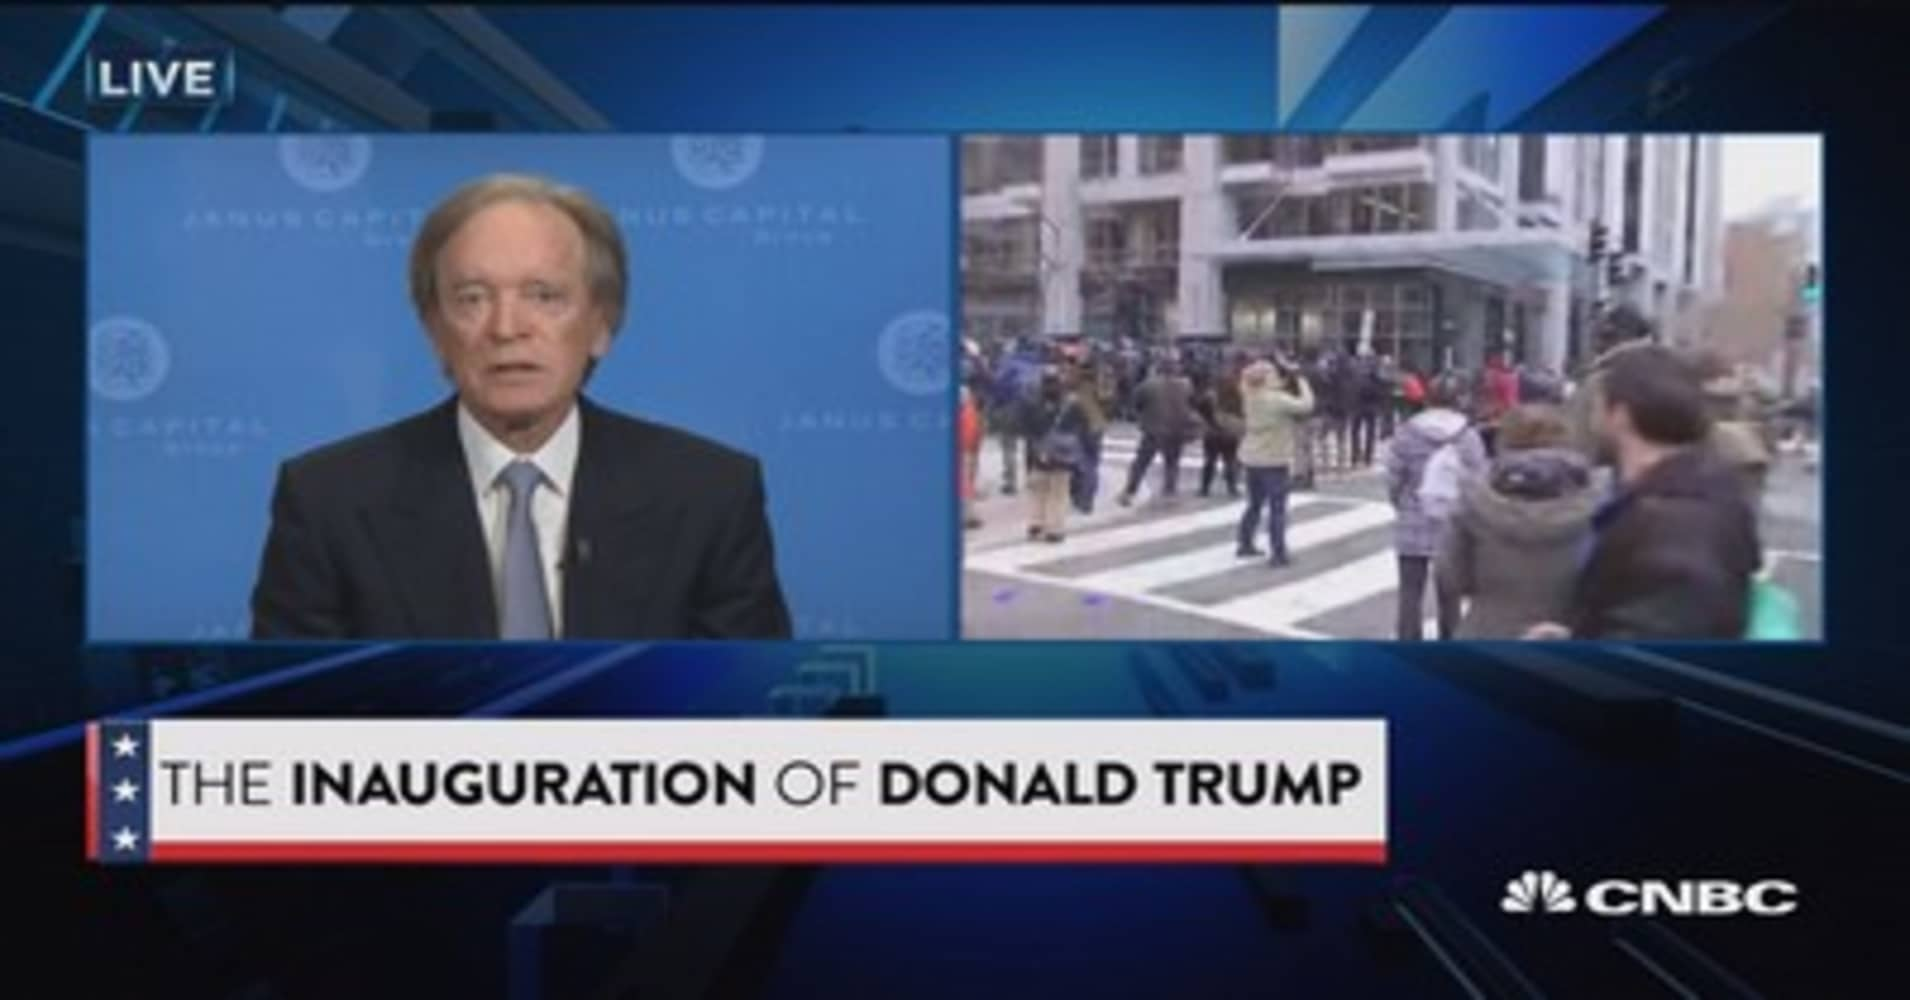 Full interview with Bill Gross on President Trump's agenda and what's needed to get economy going